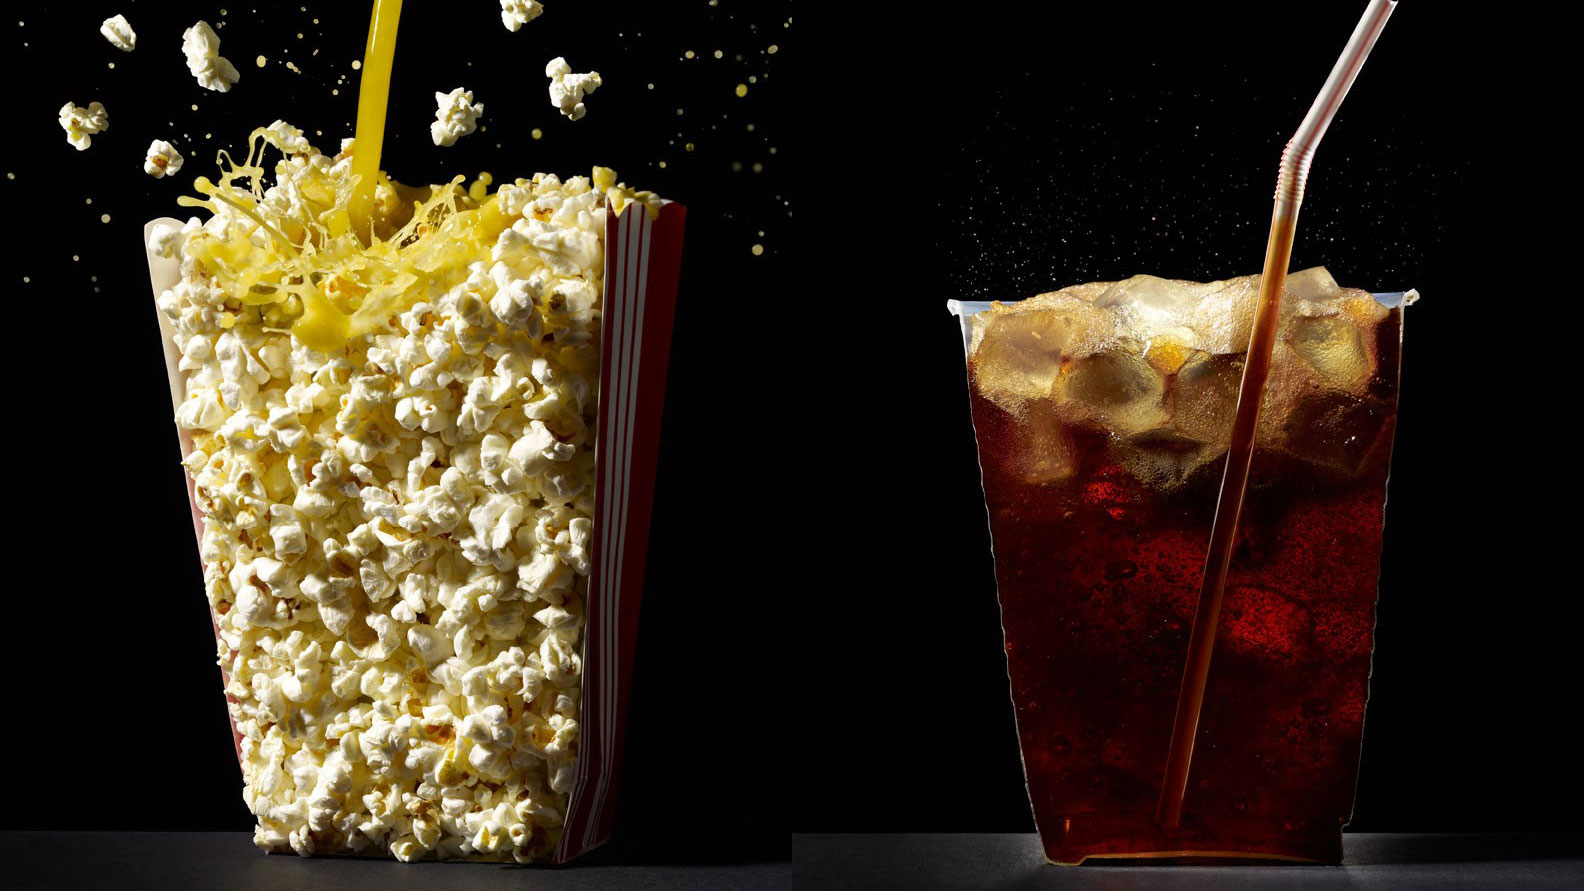 Cut Foods by Beth Galton, Popcorn